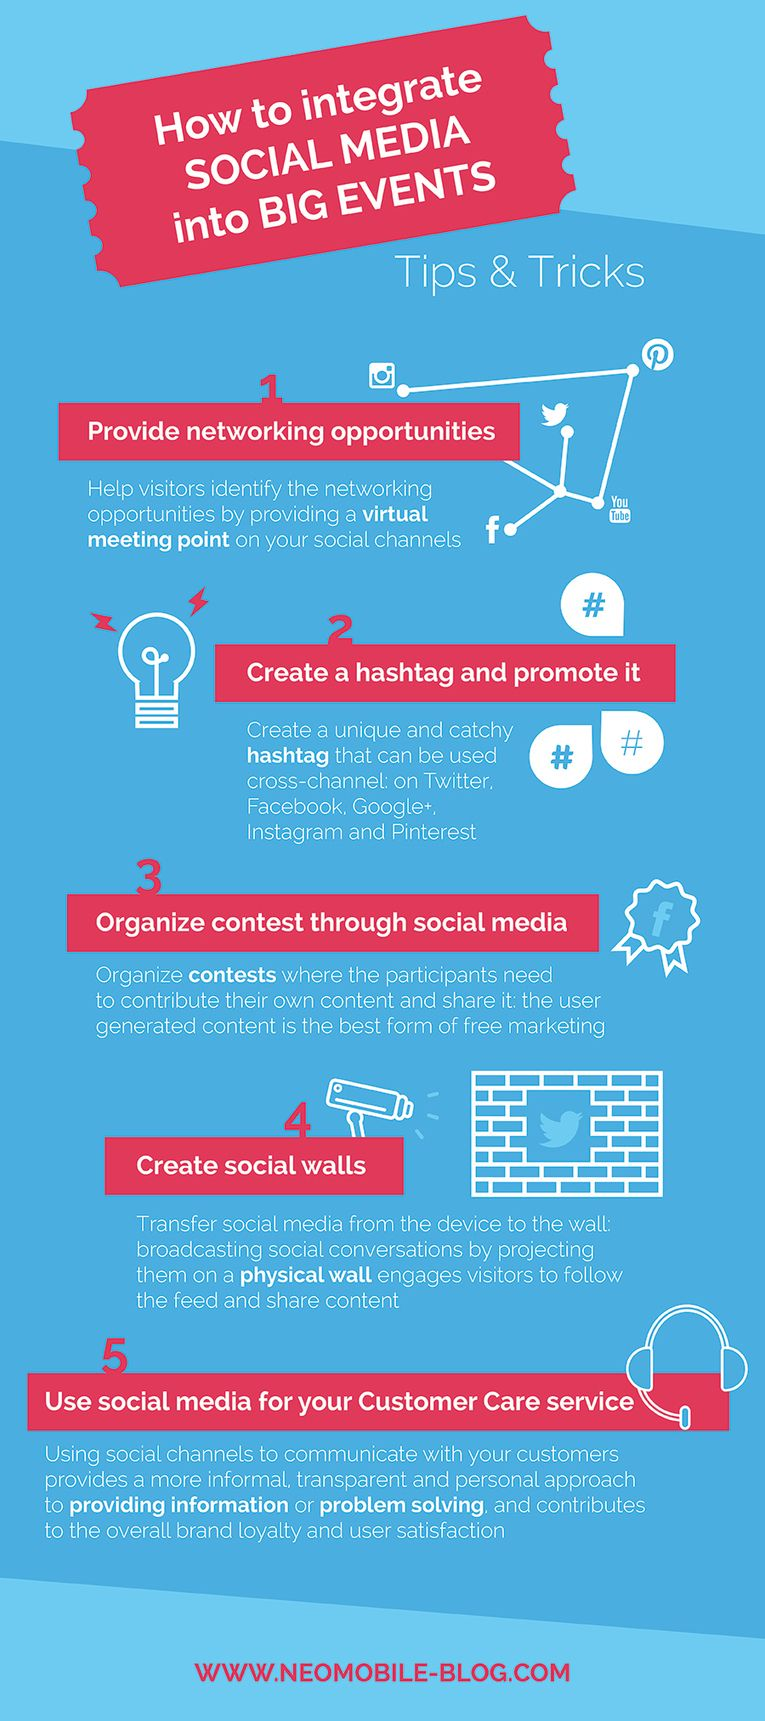 How To Integrate Social Media Into Big Events [INFOGRAPHIC] - AllTwitter - Mediabistro